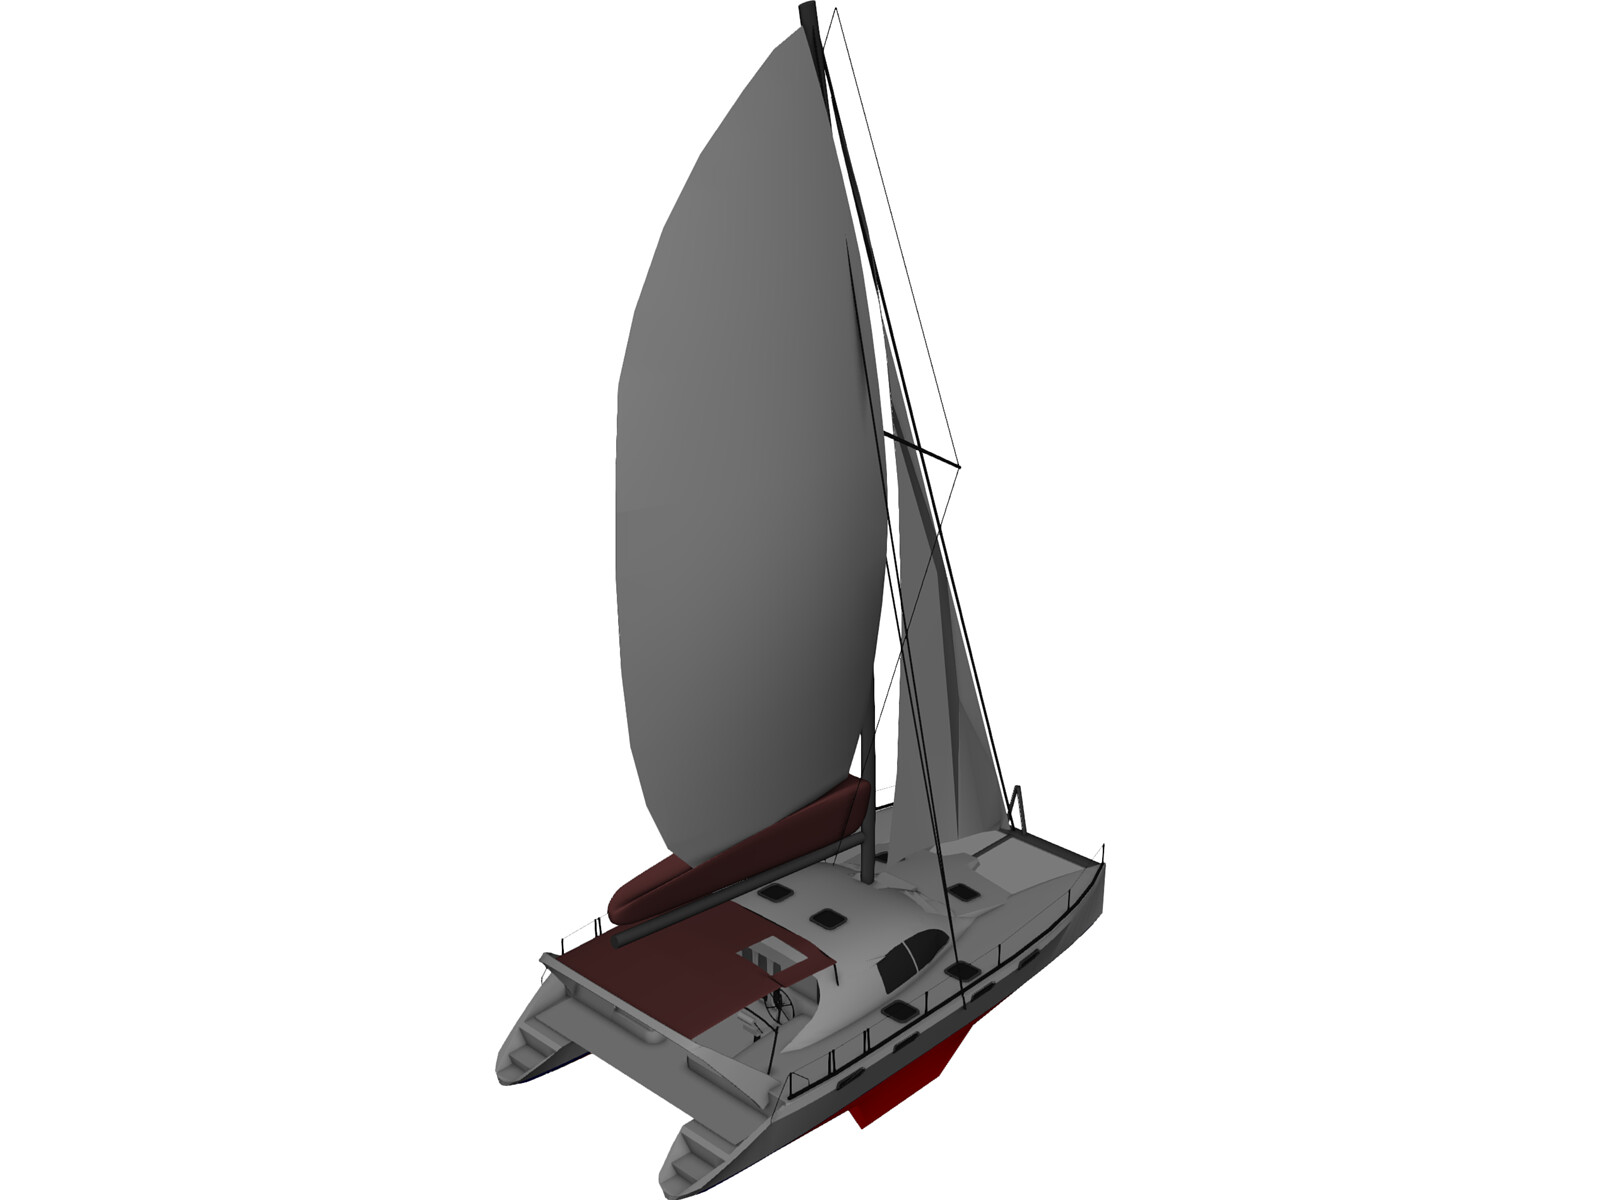 Moorings 4600 Catamaran Sailboat